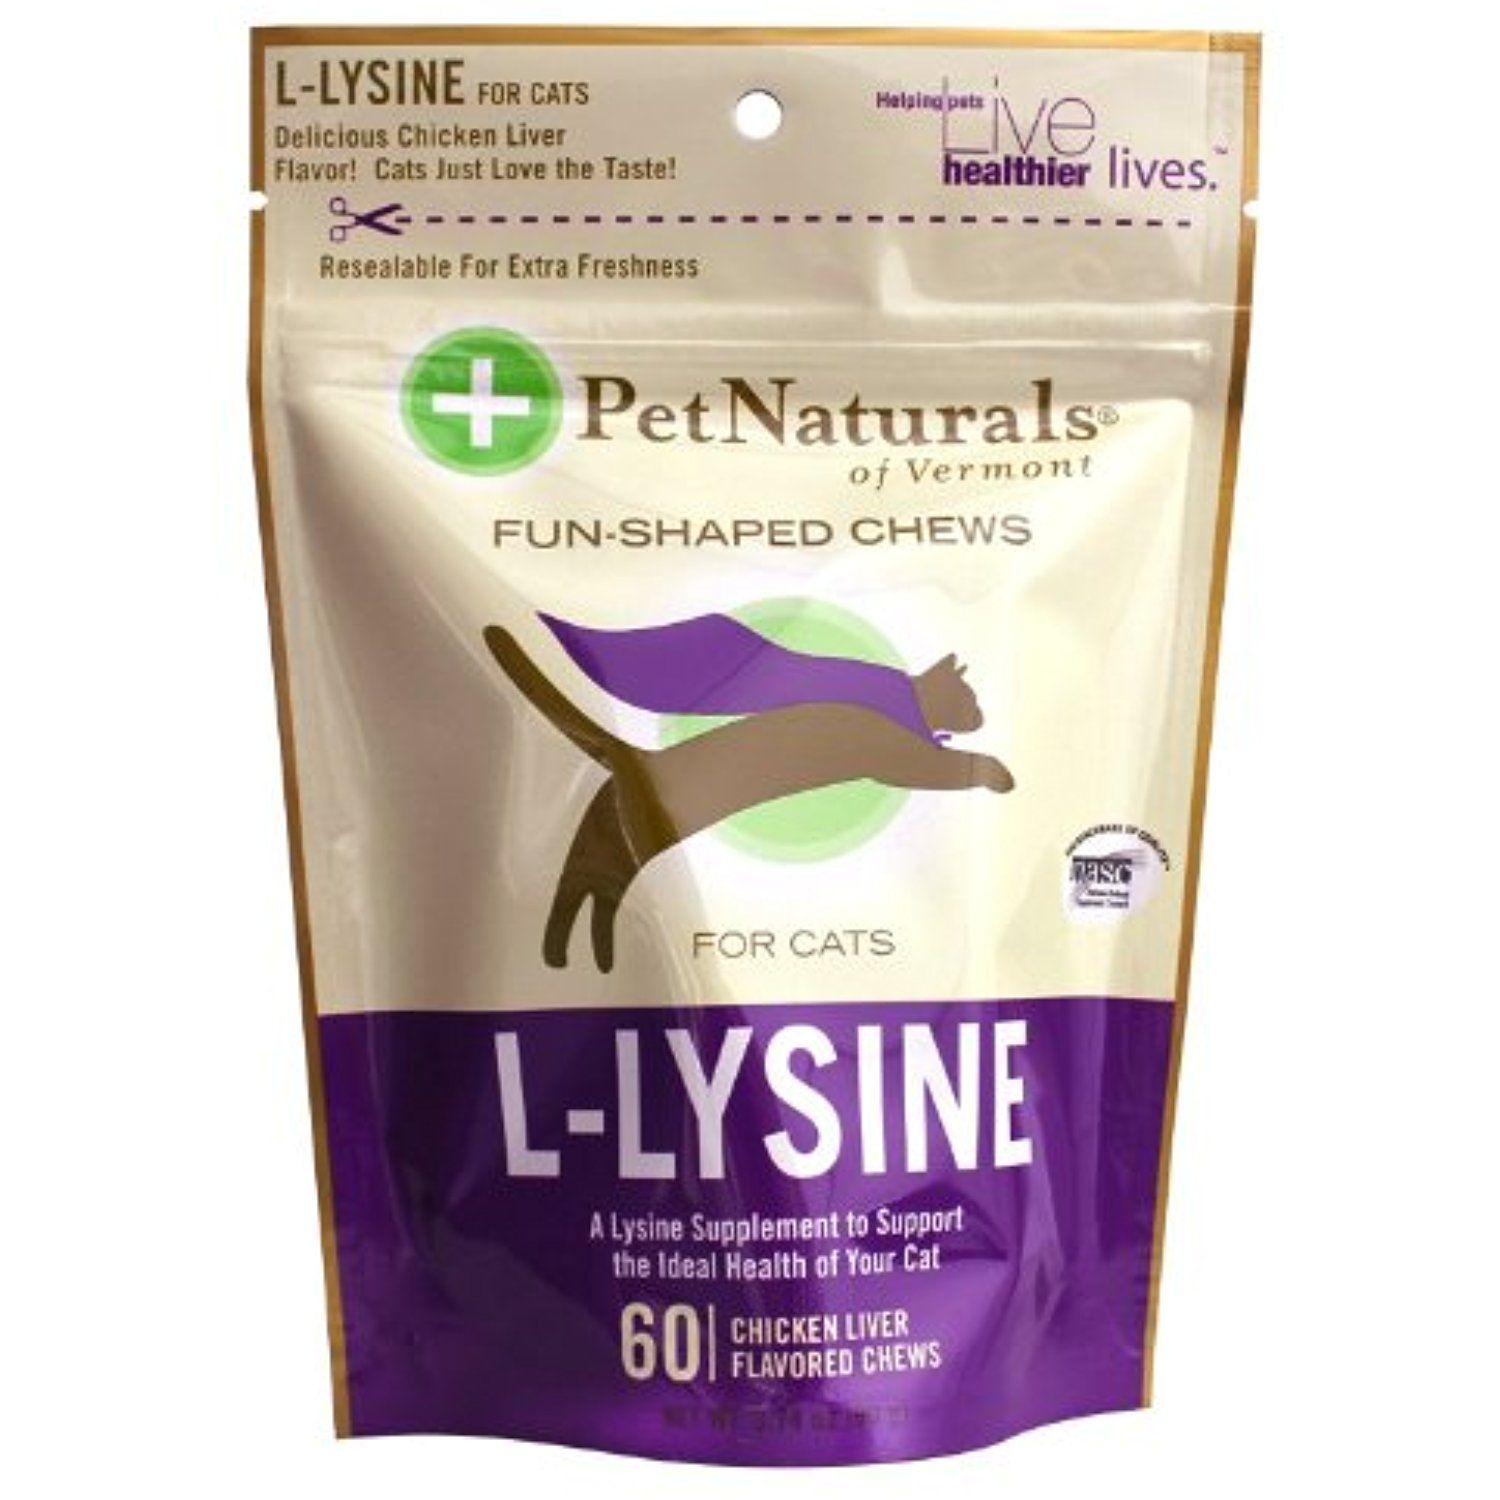 Pet Naturals of Vermont LLysine 60 FunShaped Chews for